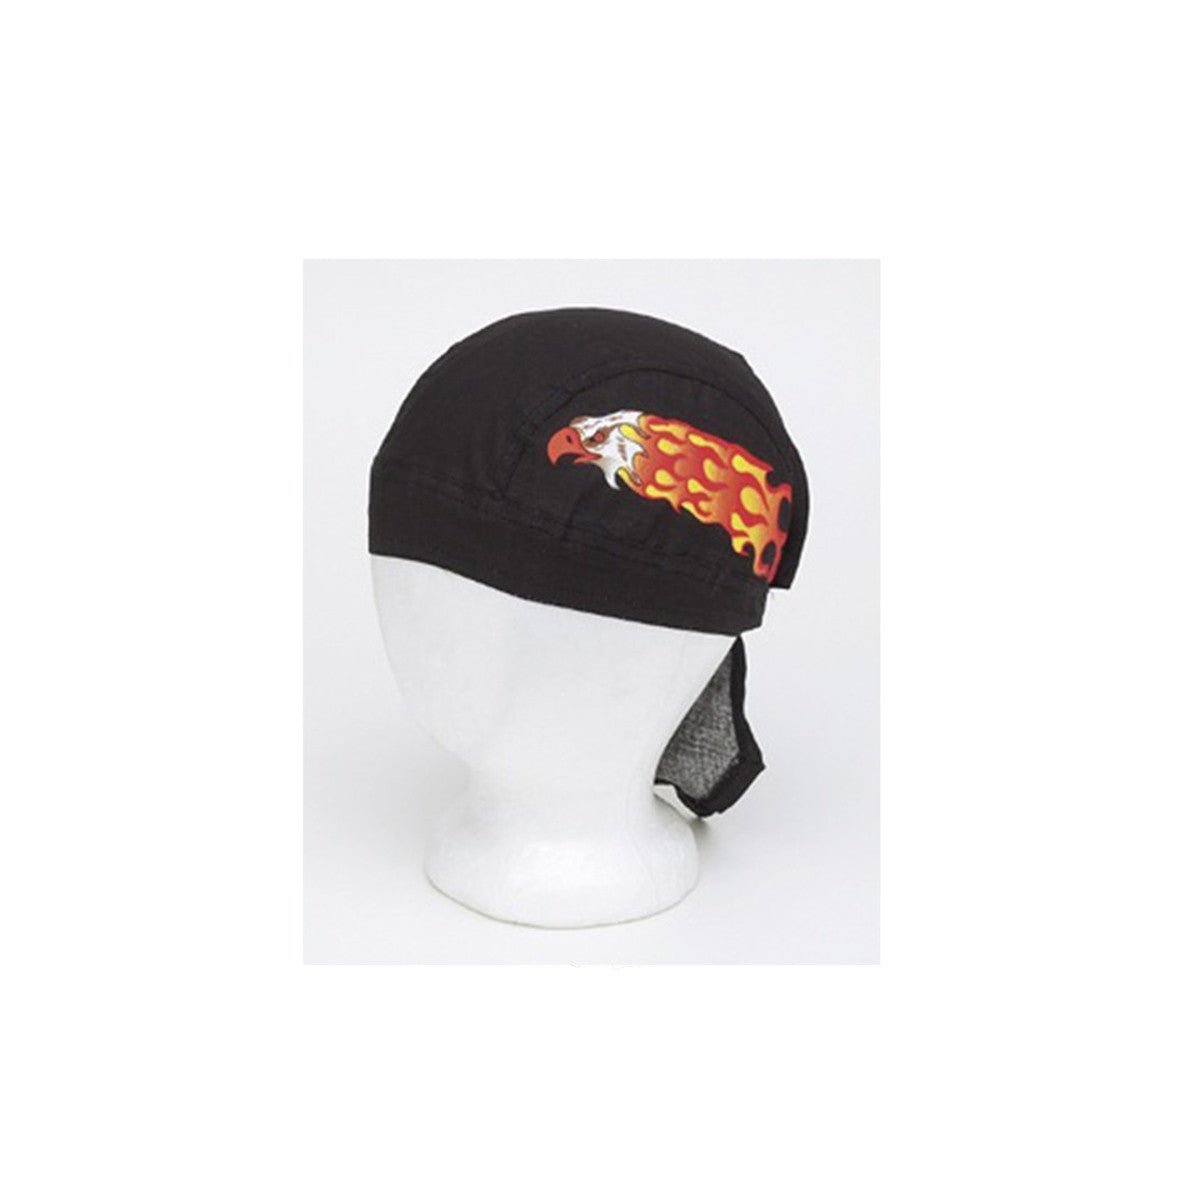 Cotton Skull Cap with Eagle in Flames